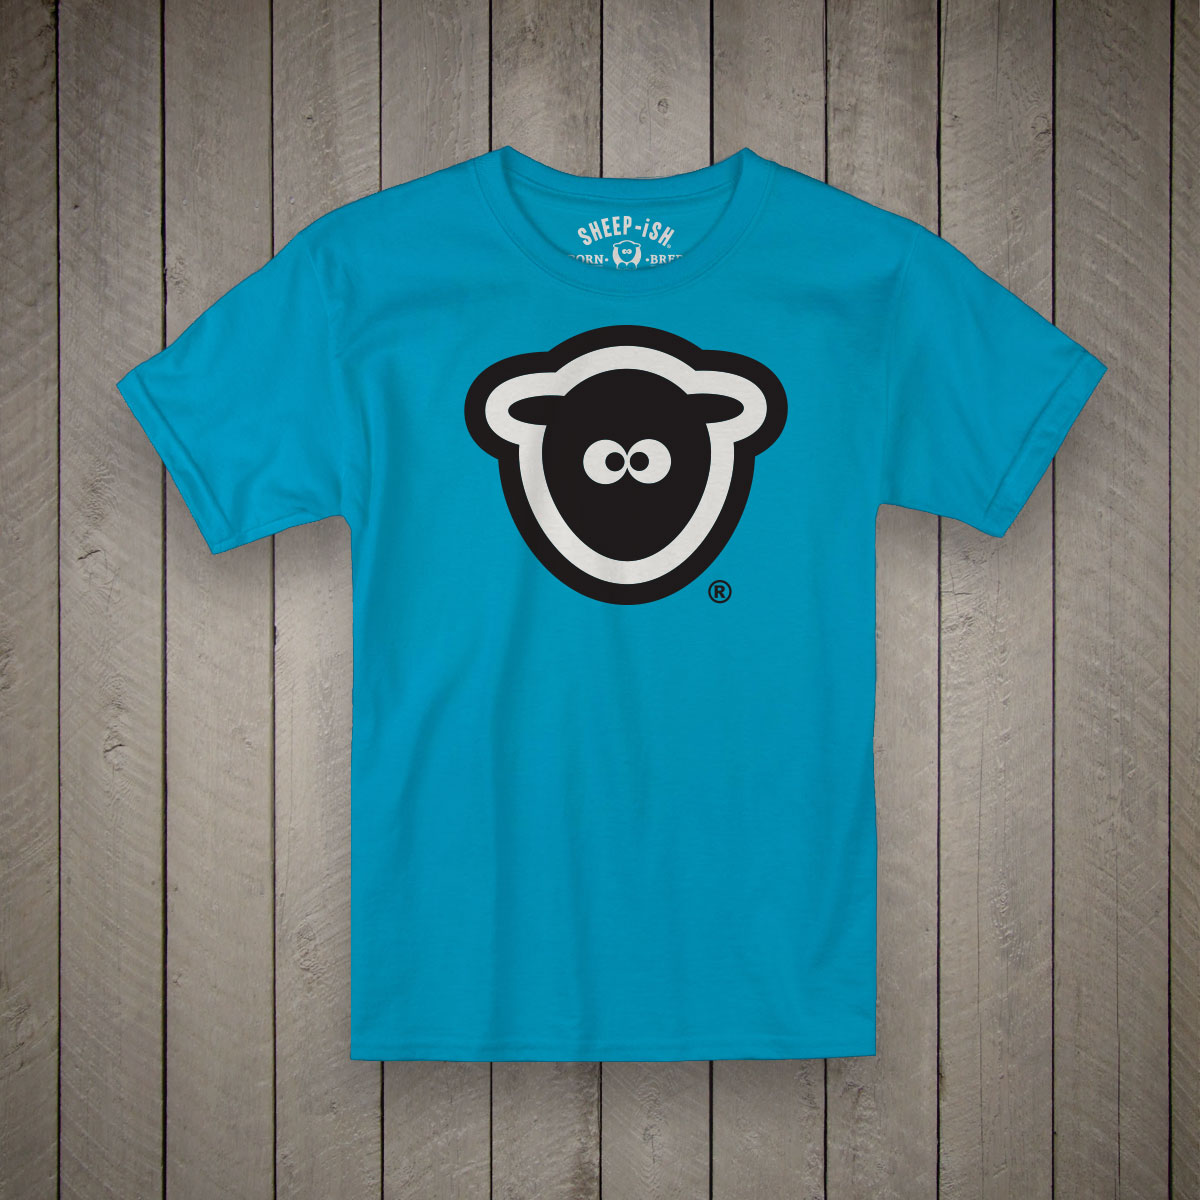 Sheep Head T-Shirt (Blue)